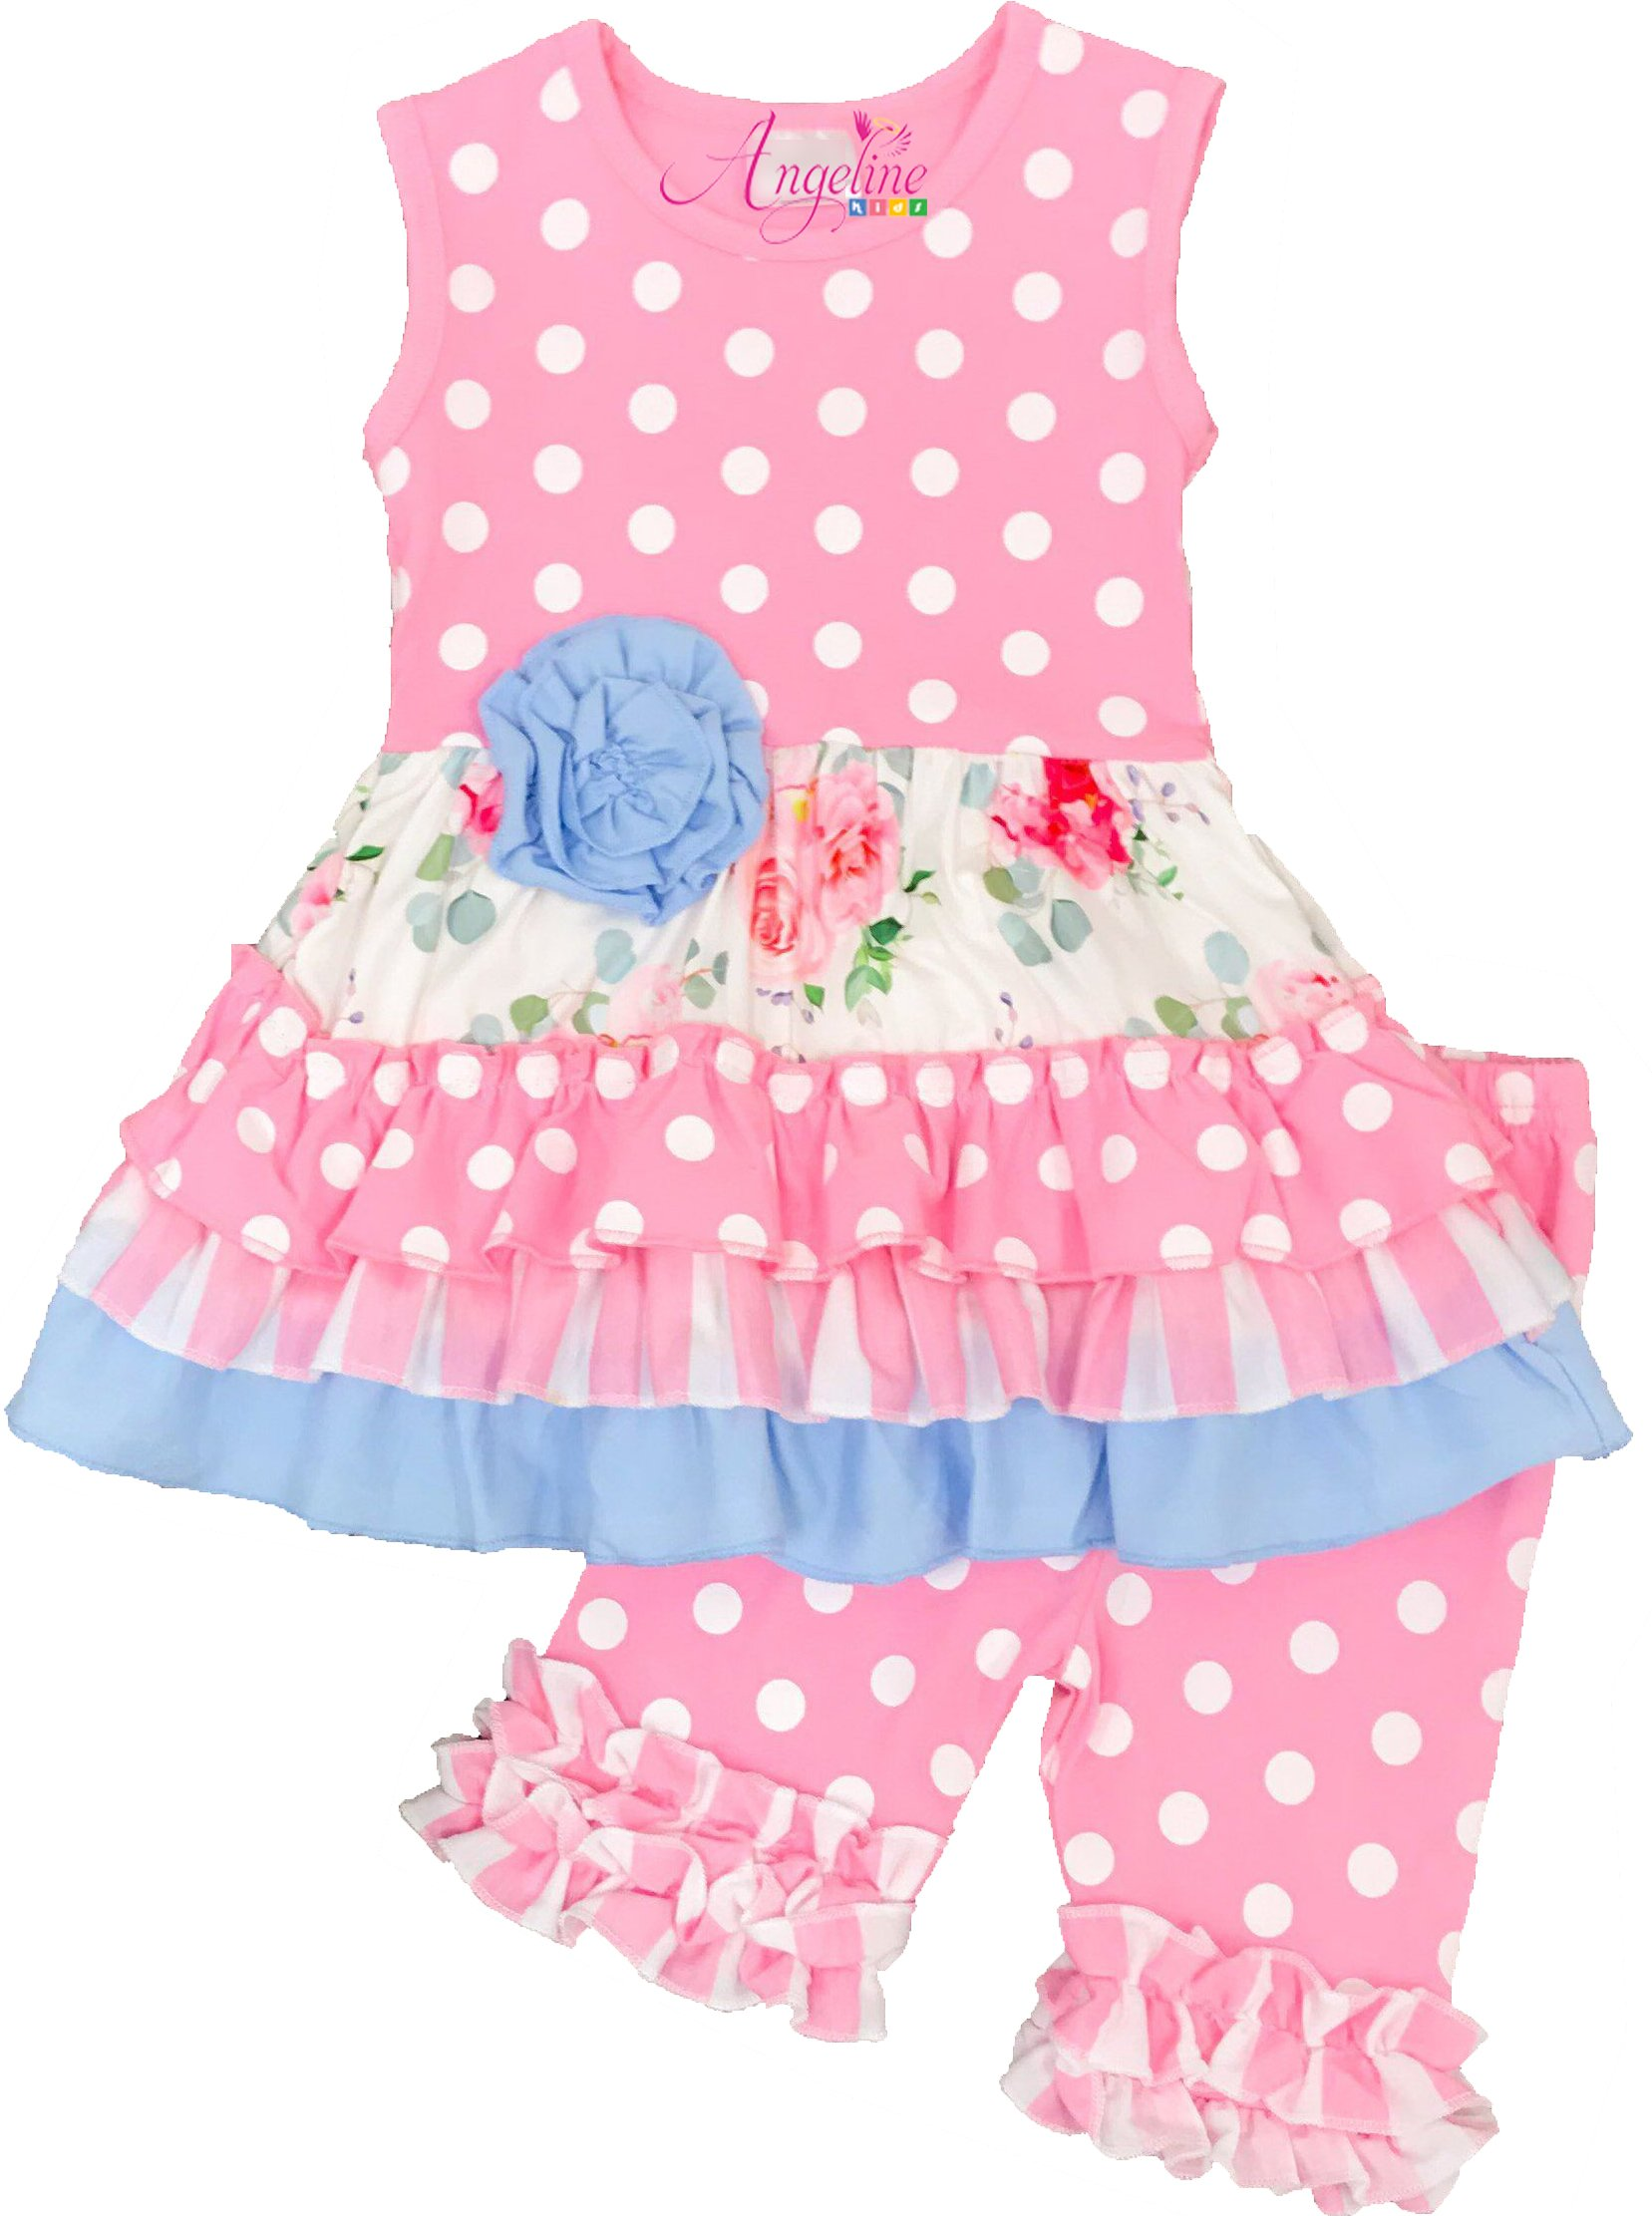 Boutique Clothing Girls Pretty in Pink Polka Dots Tiered Short Set 7T/3XL by Angeline (Image #1)